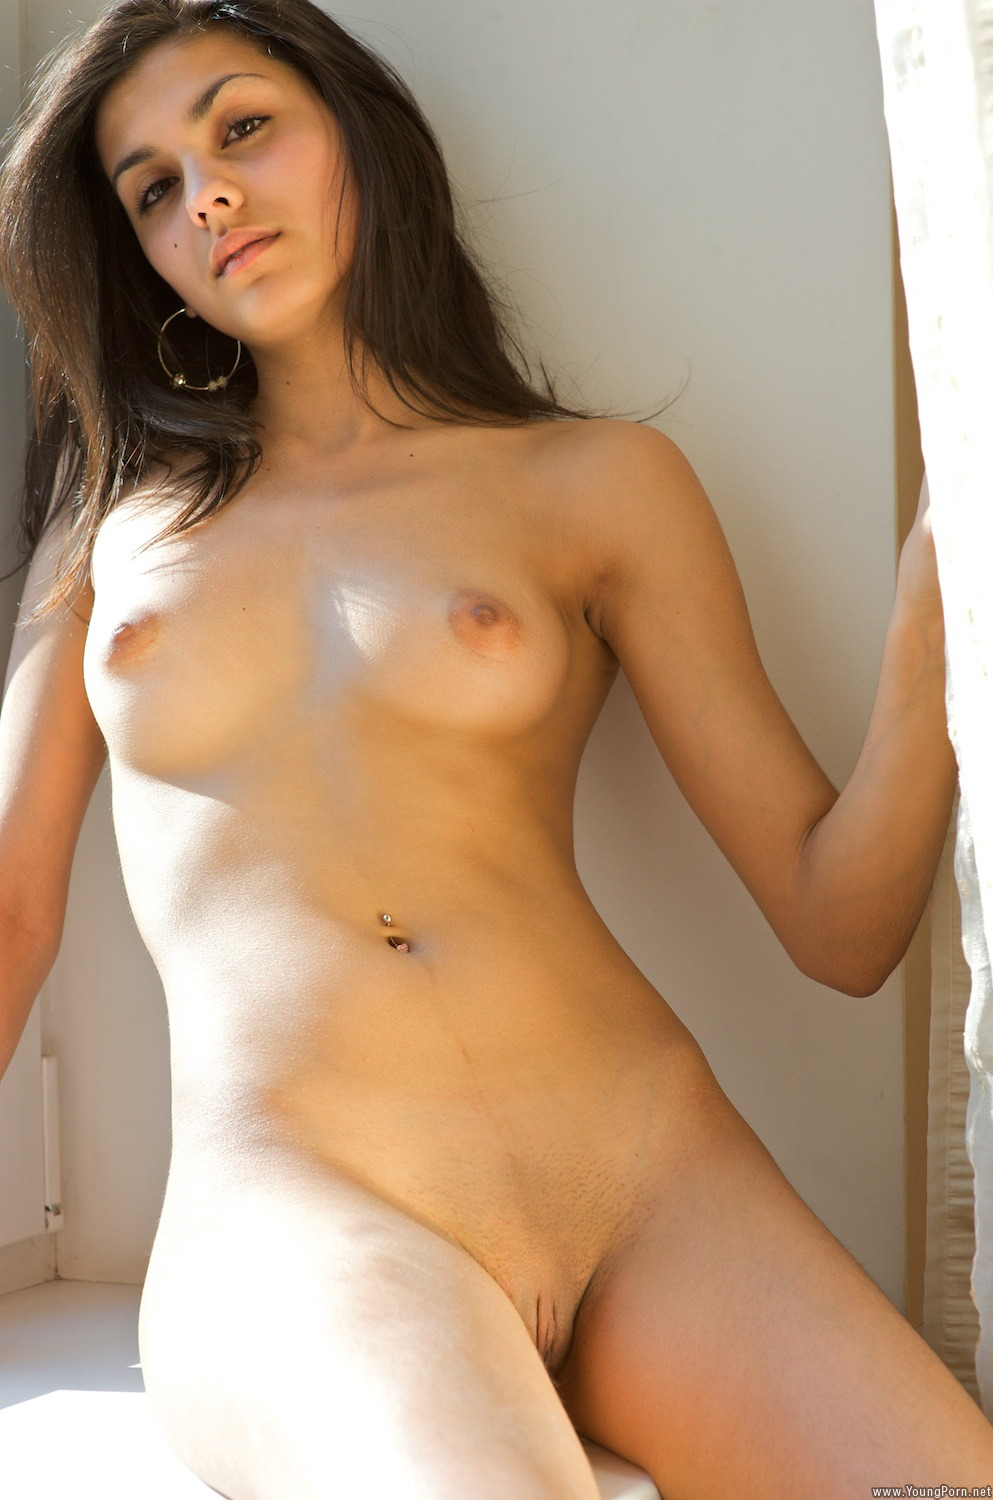 Hot indian nudity